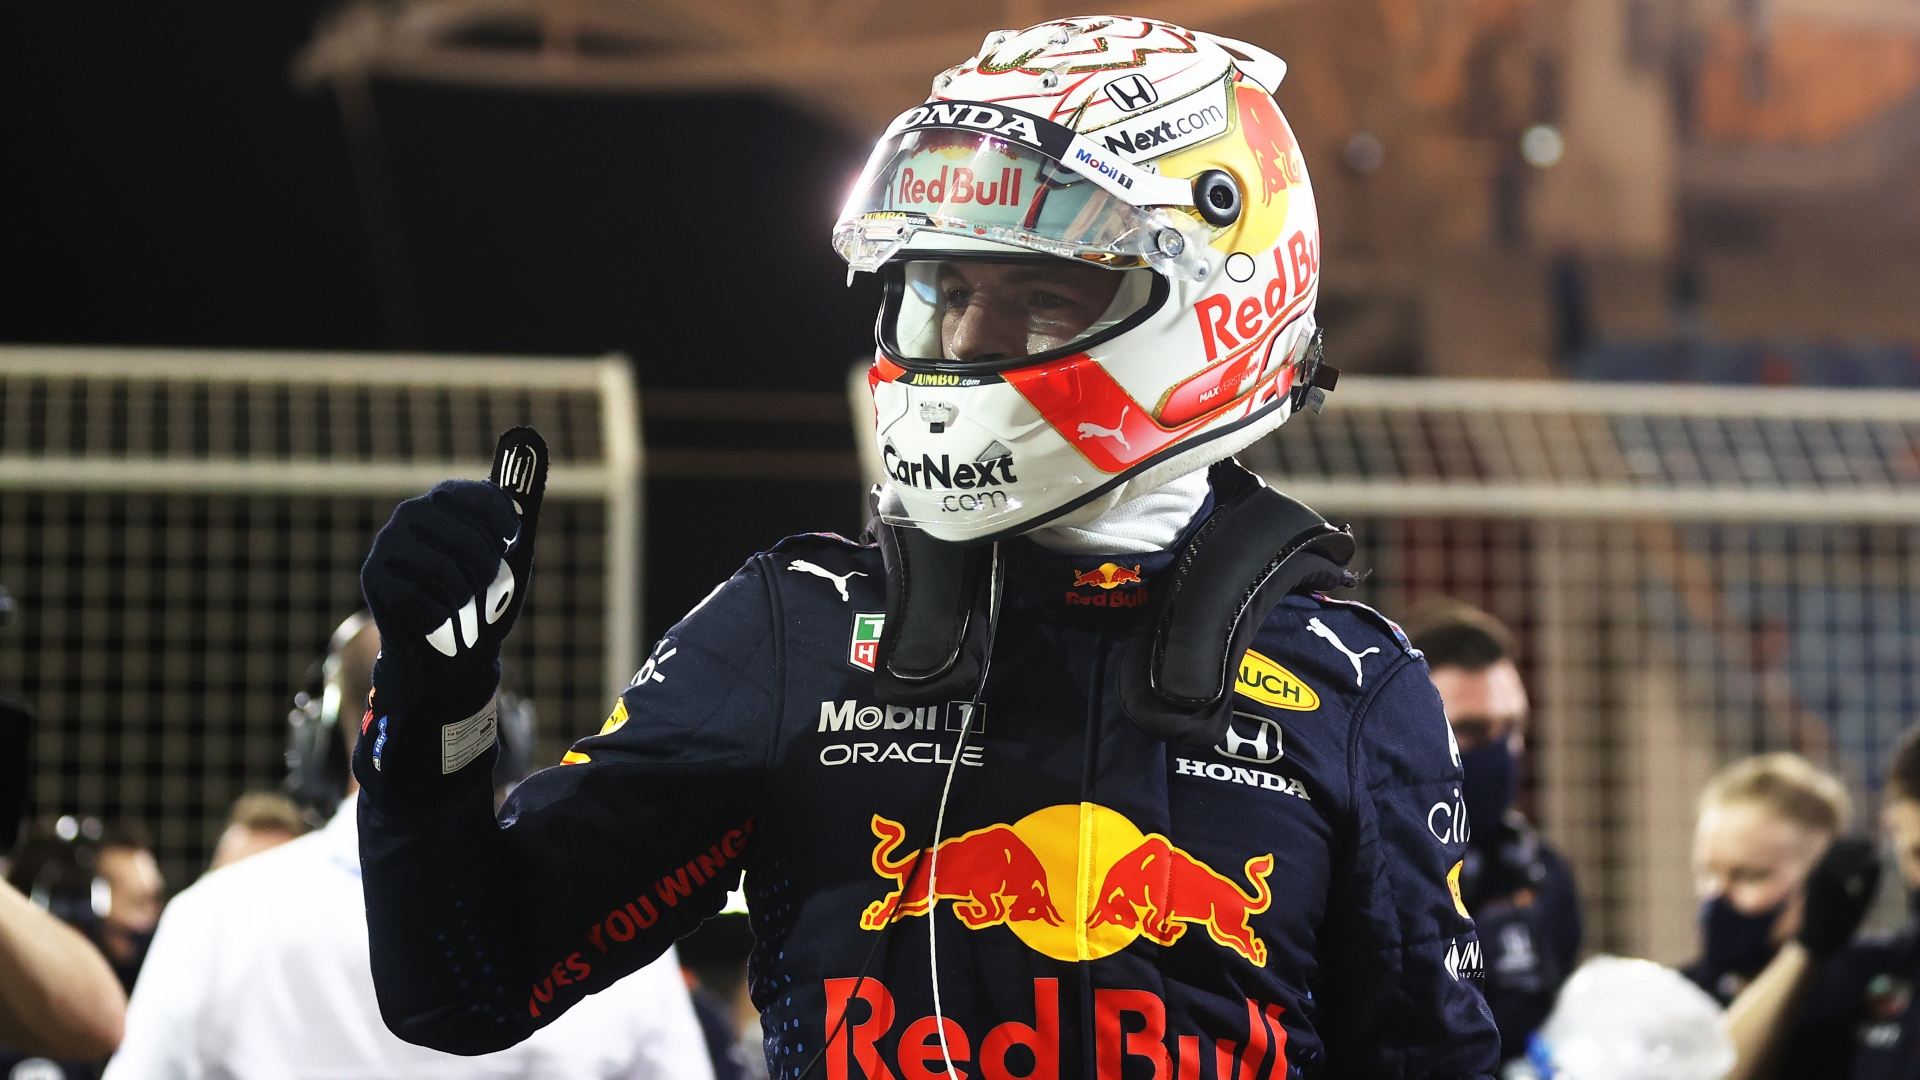 Verstappen storms to Bahrain pole as Hamilton says second 'the best I could do'